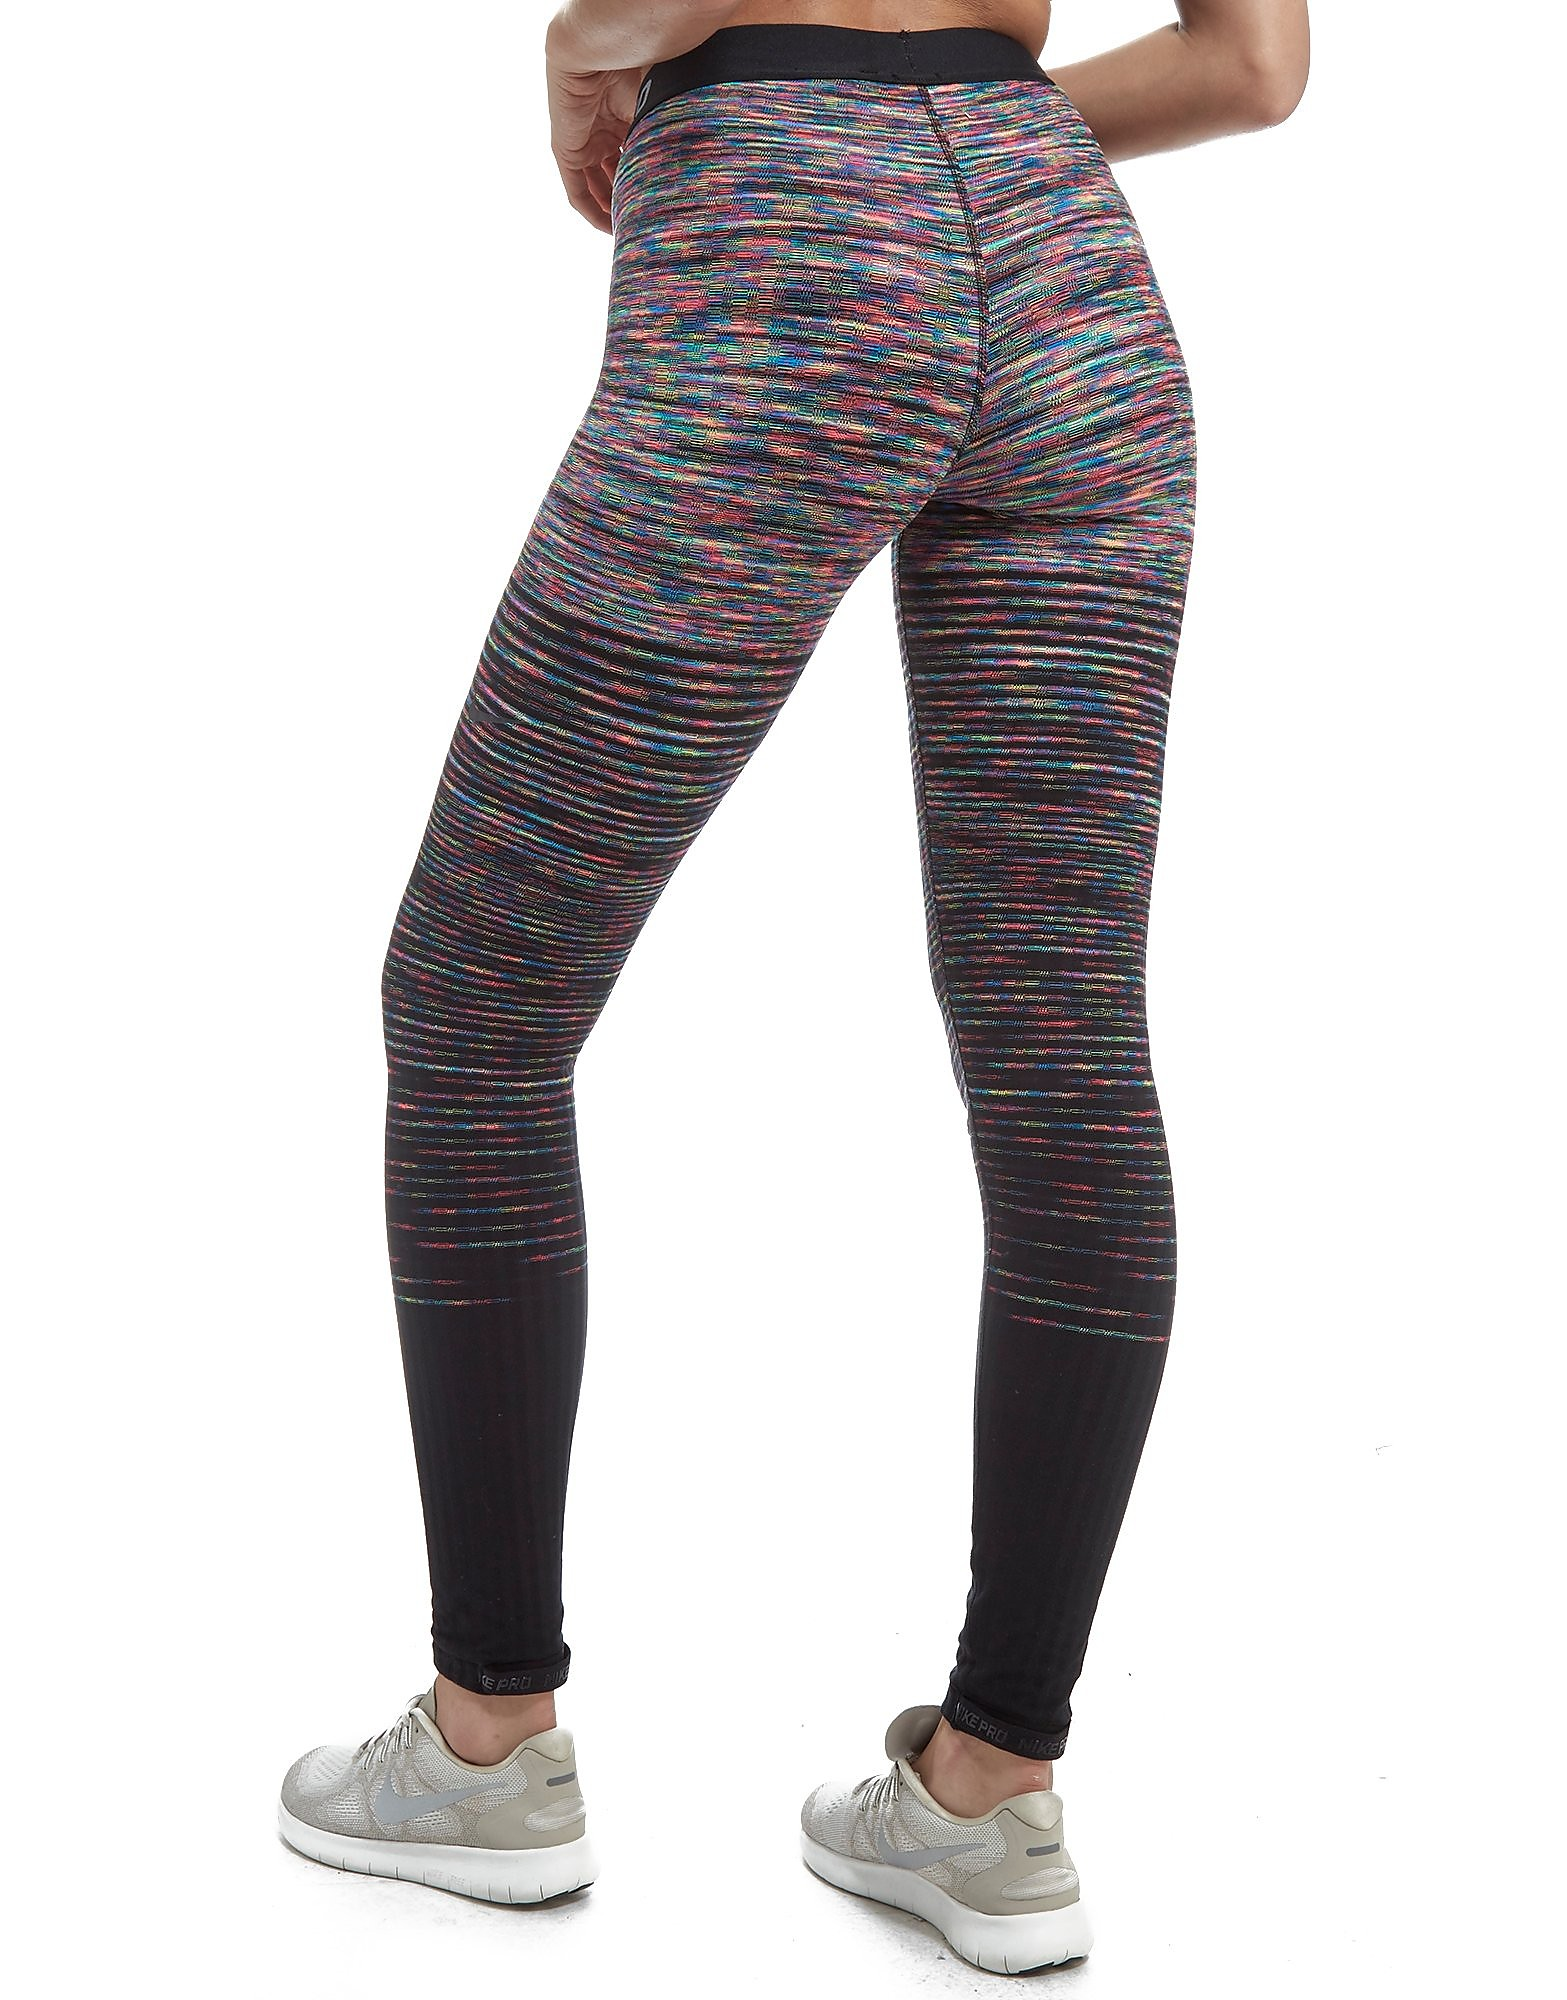 Nike Pro HyperWarm Stripe Training Tights